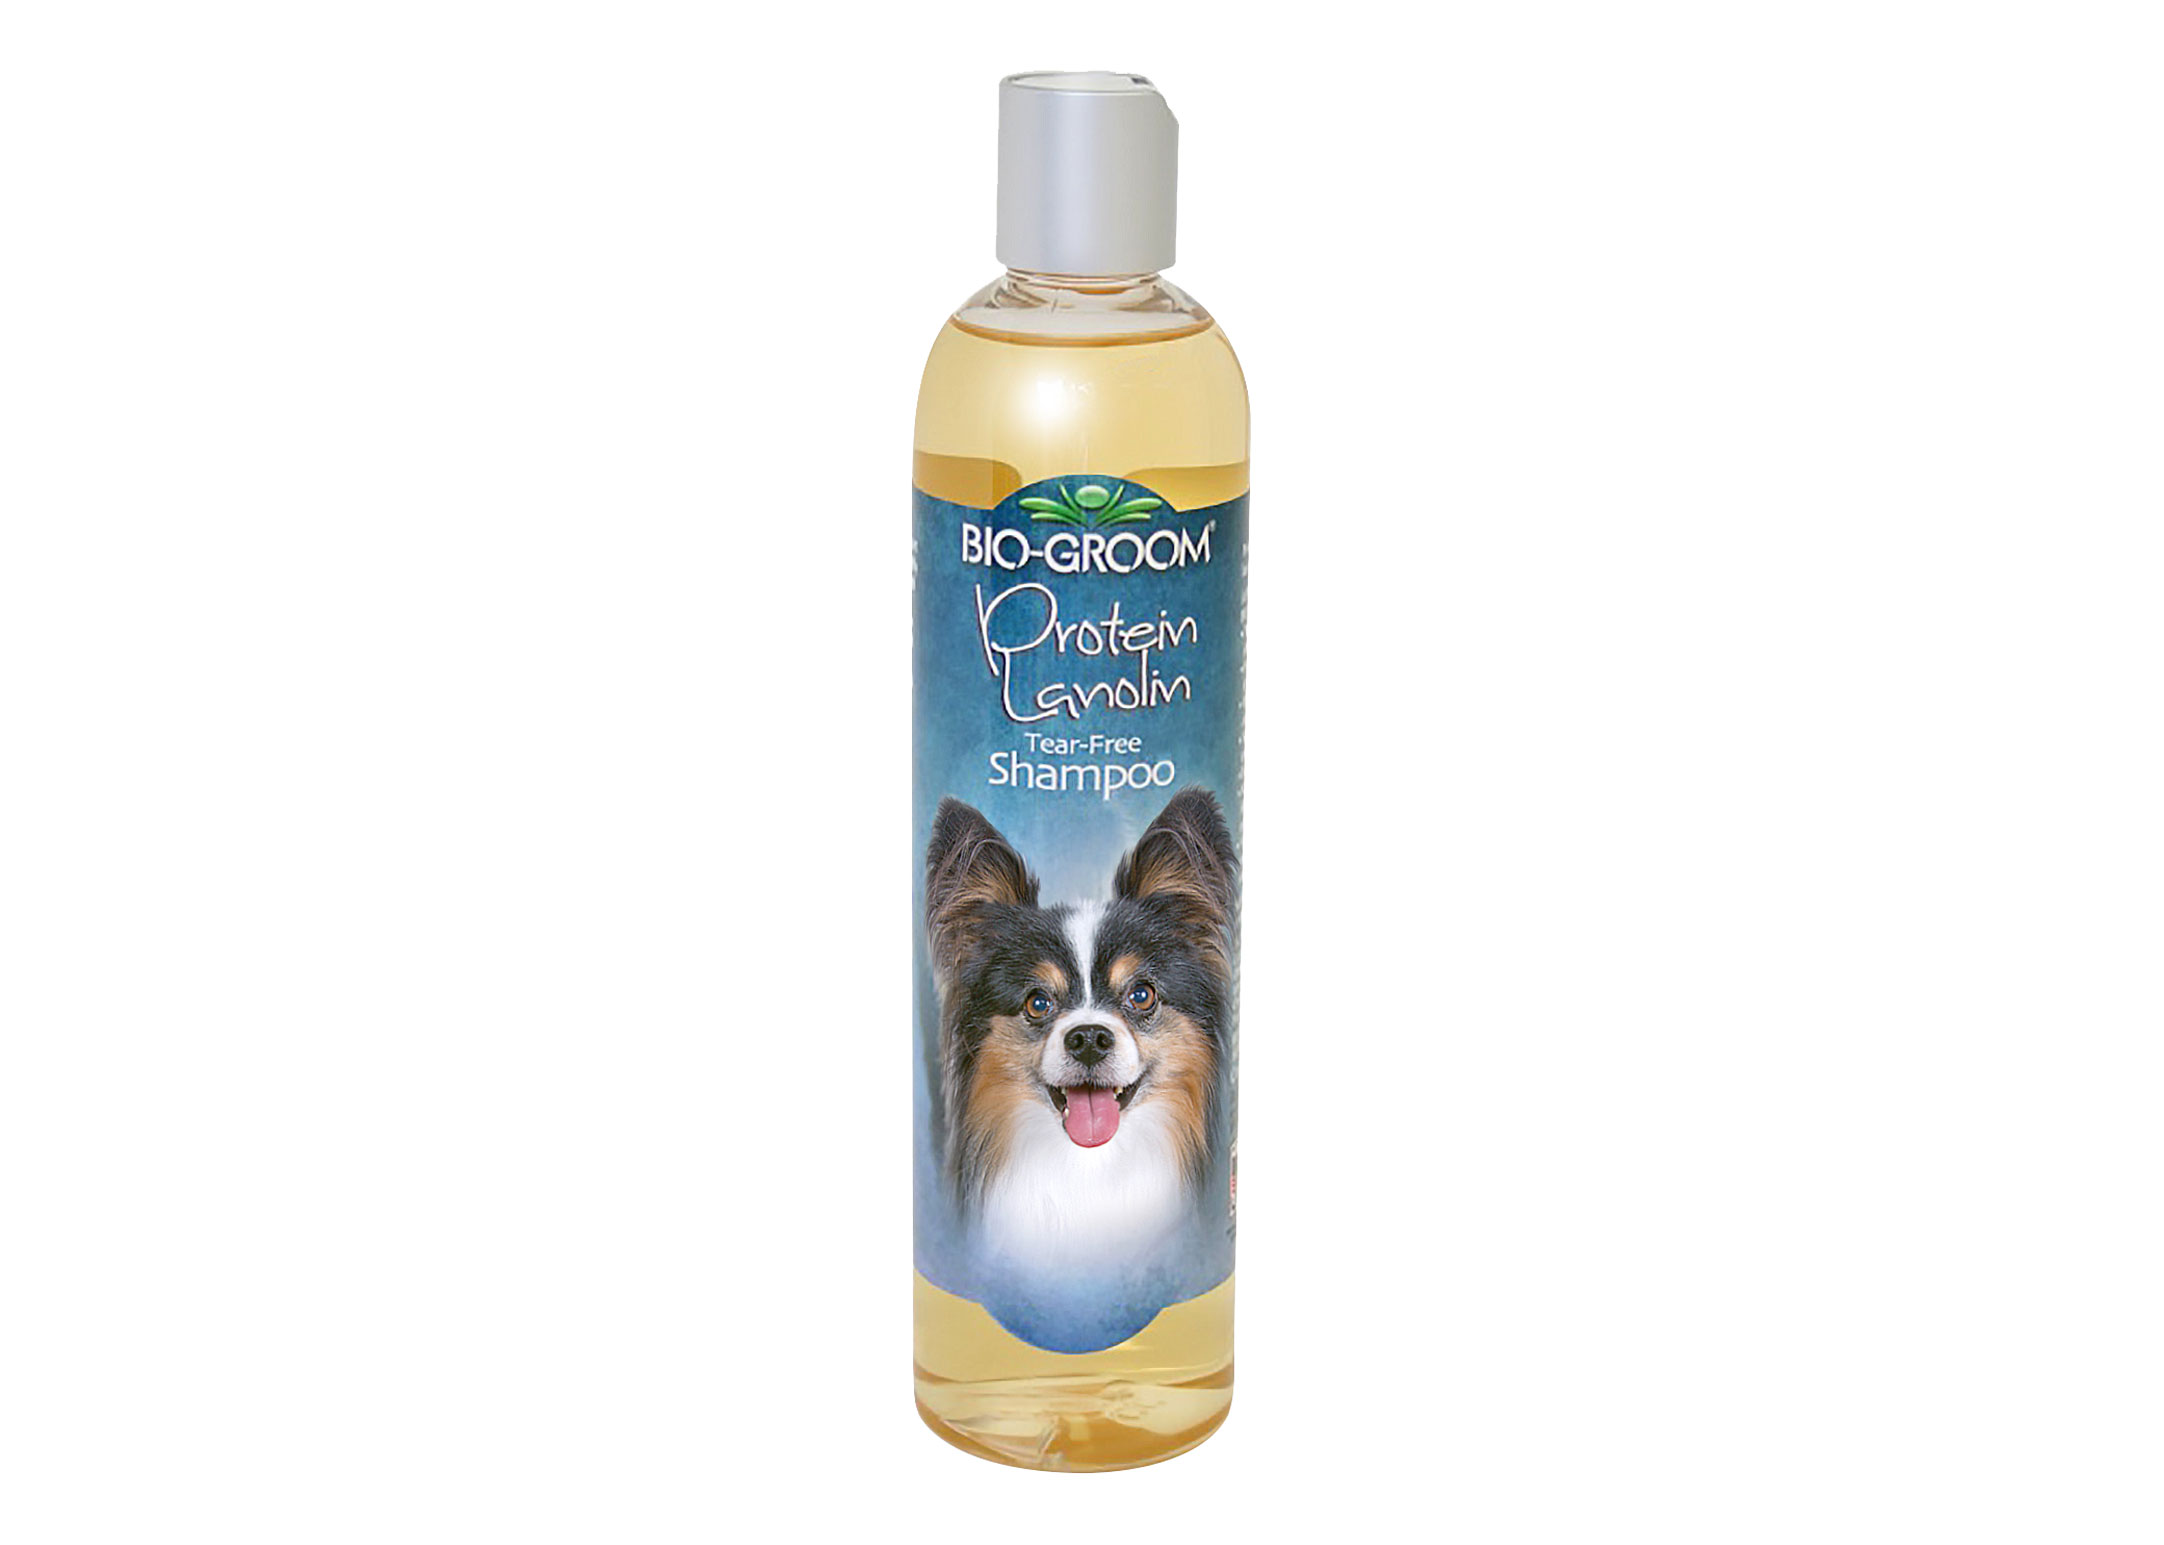 Bio Groom Protein Lanolin Shampooing Pour Chiens, Chats et Chevaux